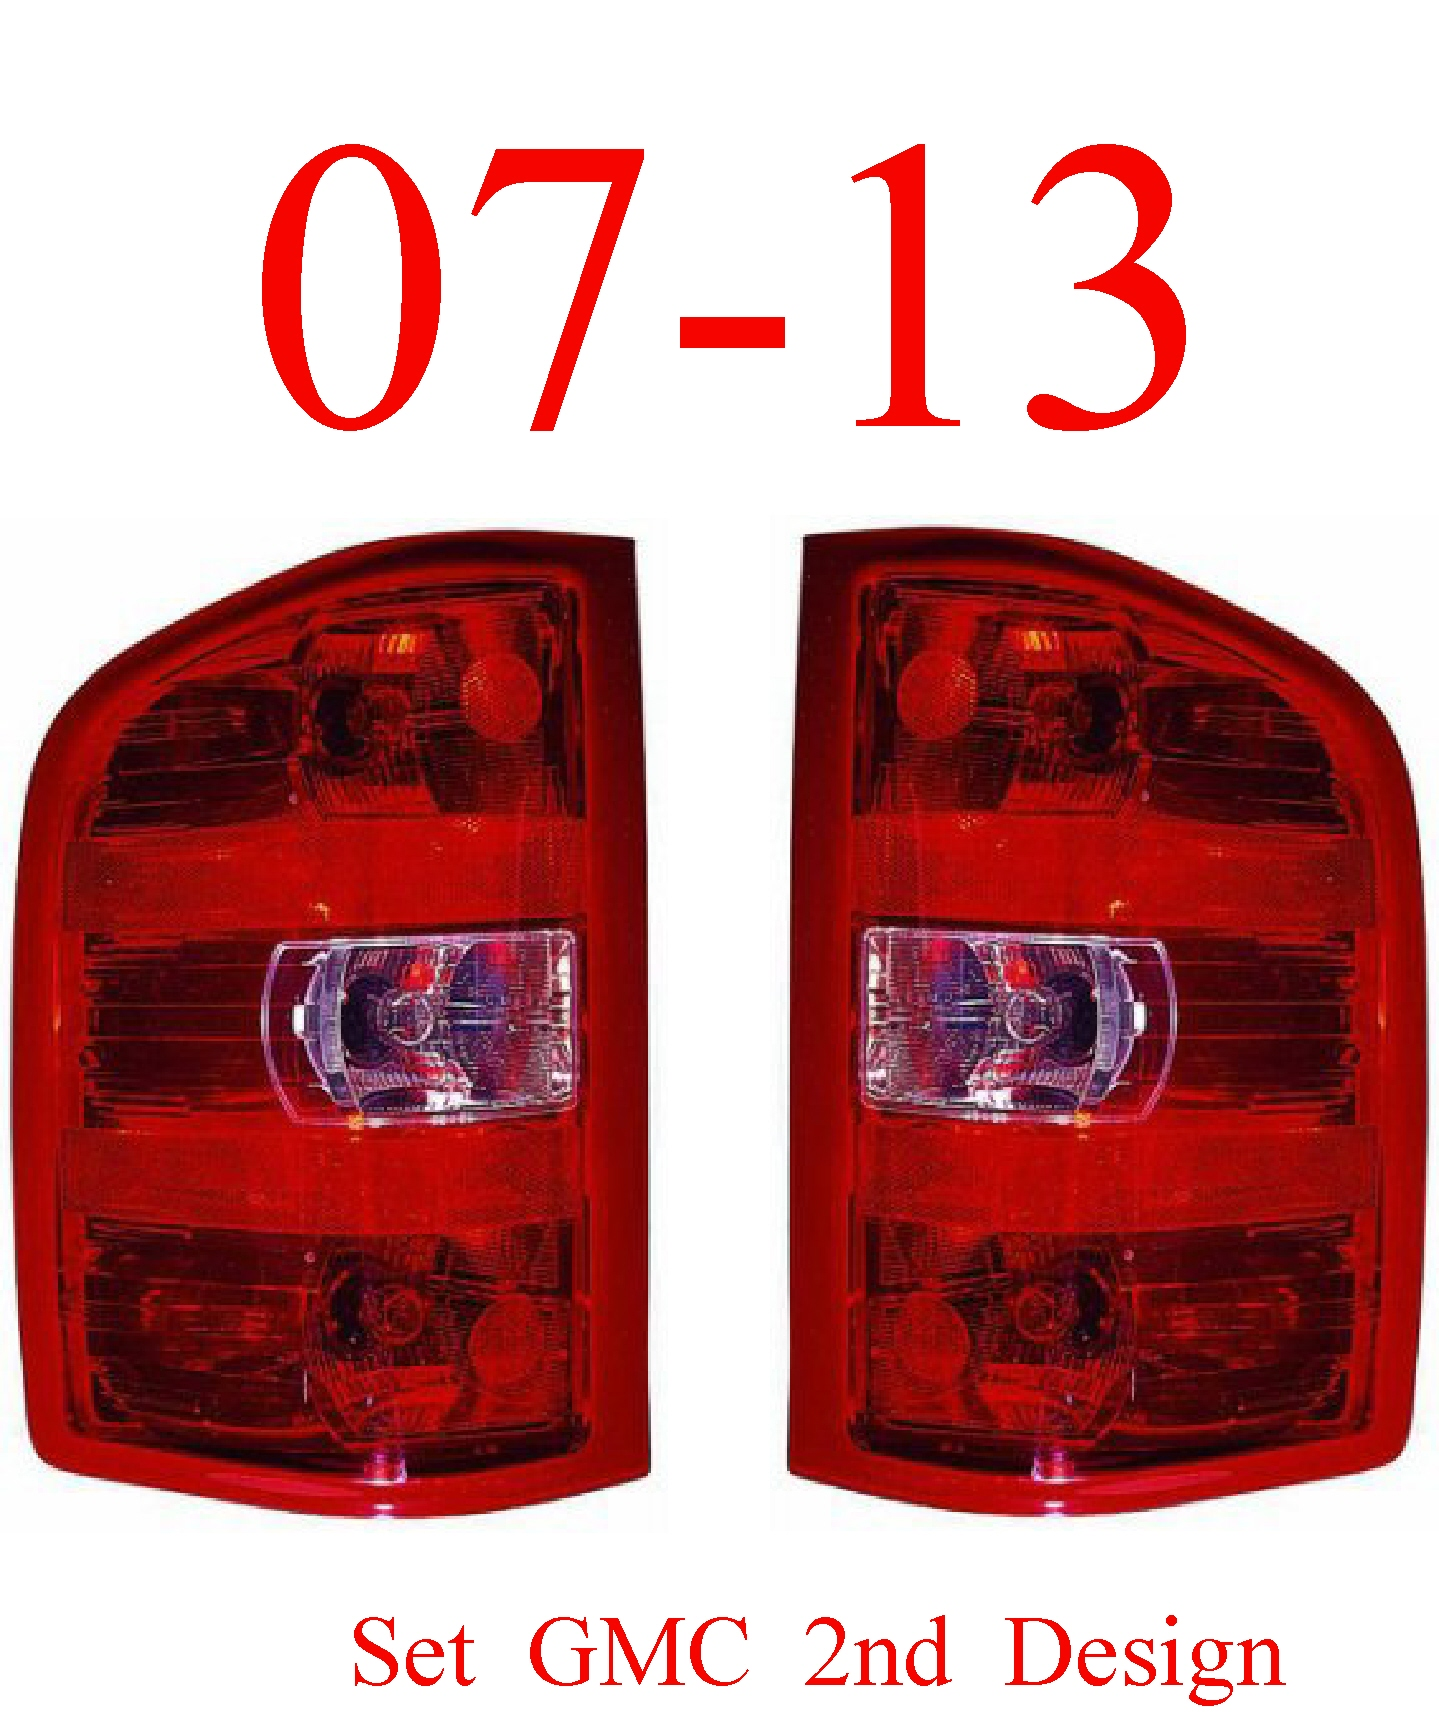 07-13 GMC Tail Light Set 2nd Design